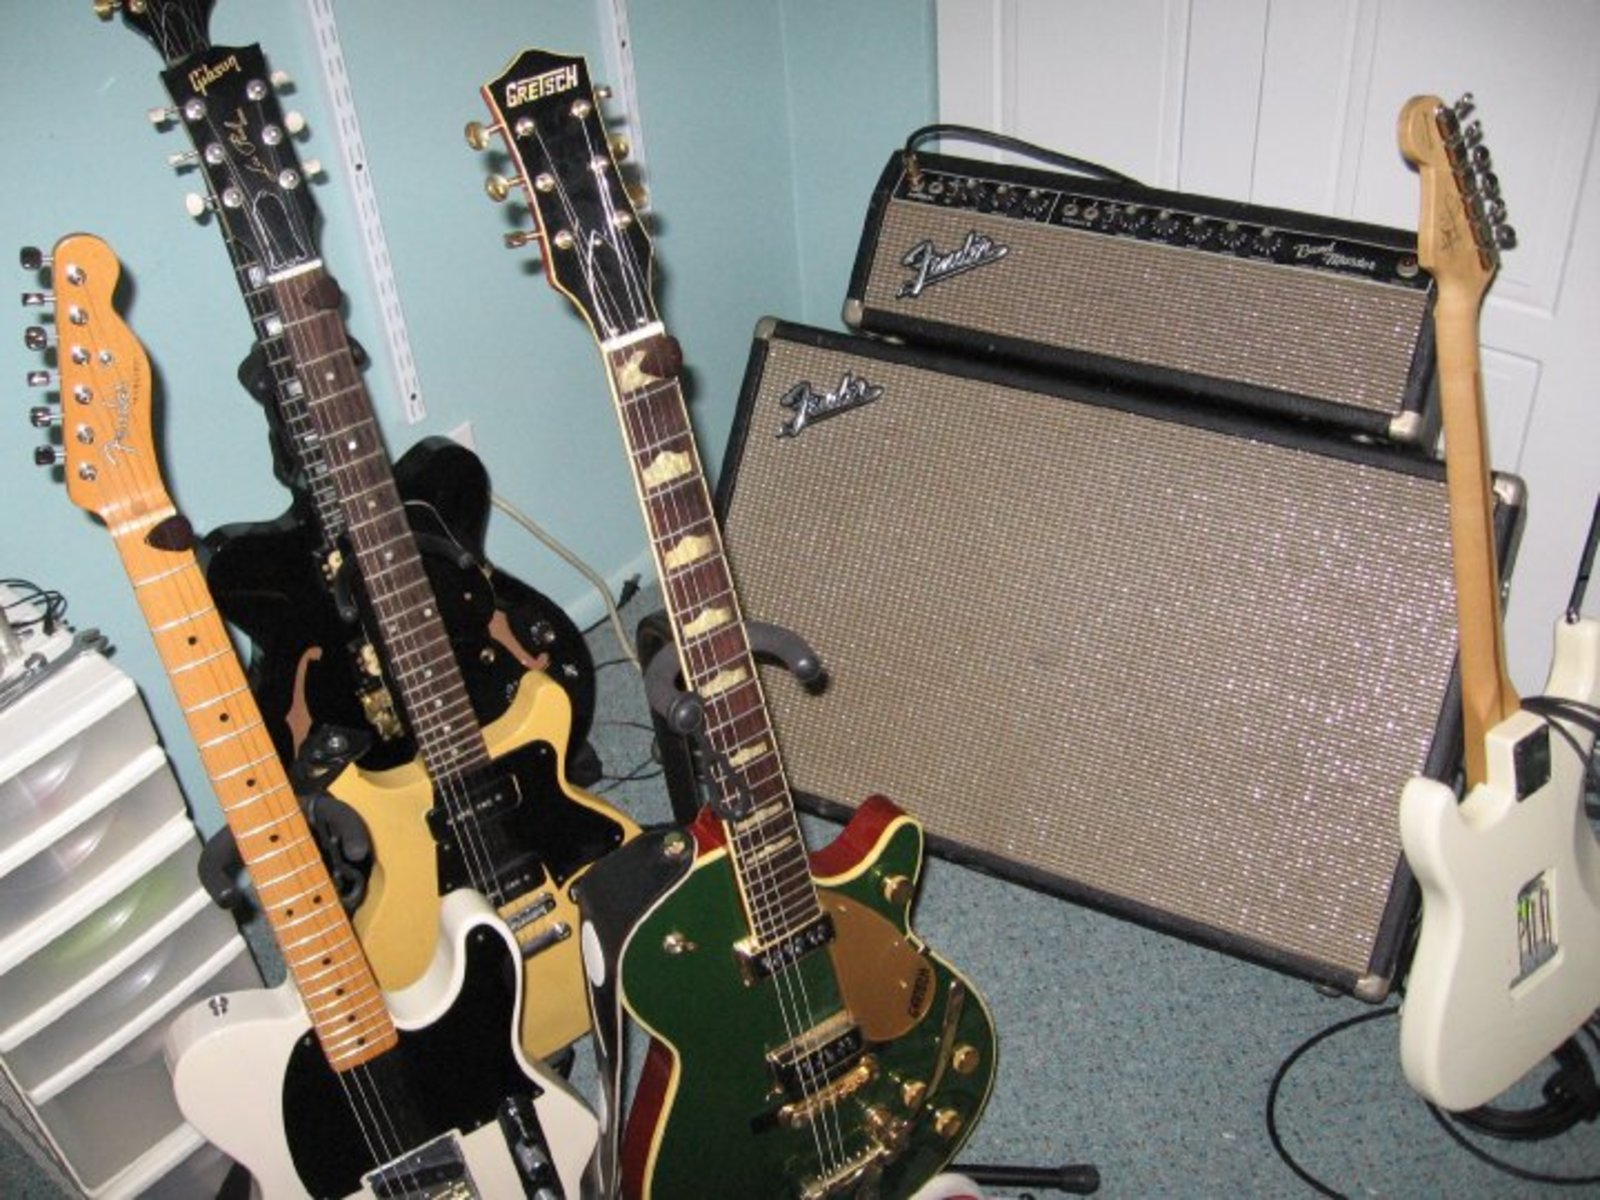 jimmarchi1's guitar and amplifier photo containing Fender Jimmie Vaughan Tex-Mex™ Strat®, Fender Bandmaster, Gibson Les Paul Special, Fender Classic Esquire Telecaster, Carvin SH225, and Gretsch G6128TCG Duo Jet Cadillac Green